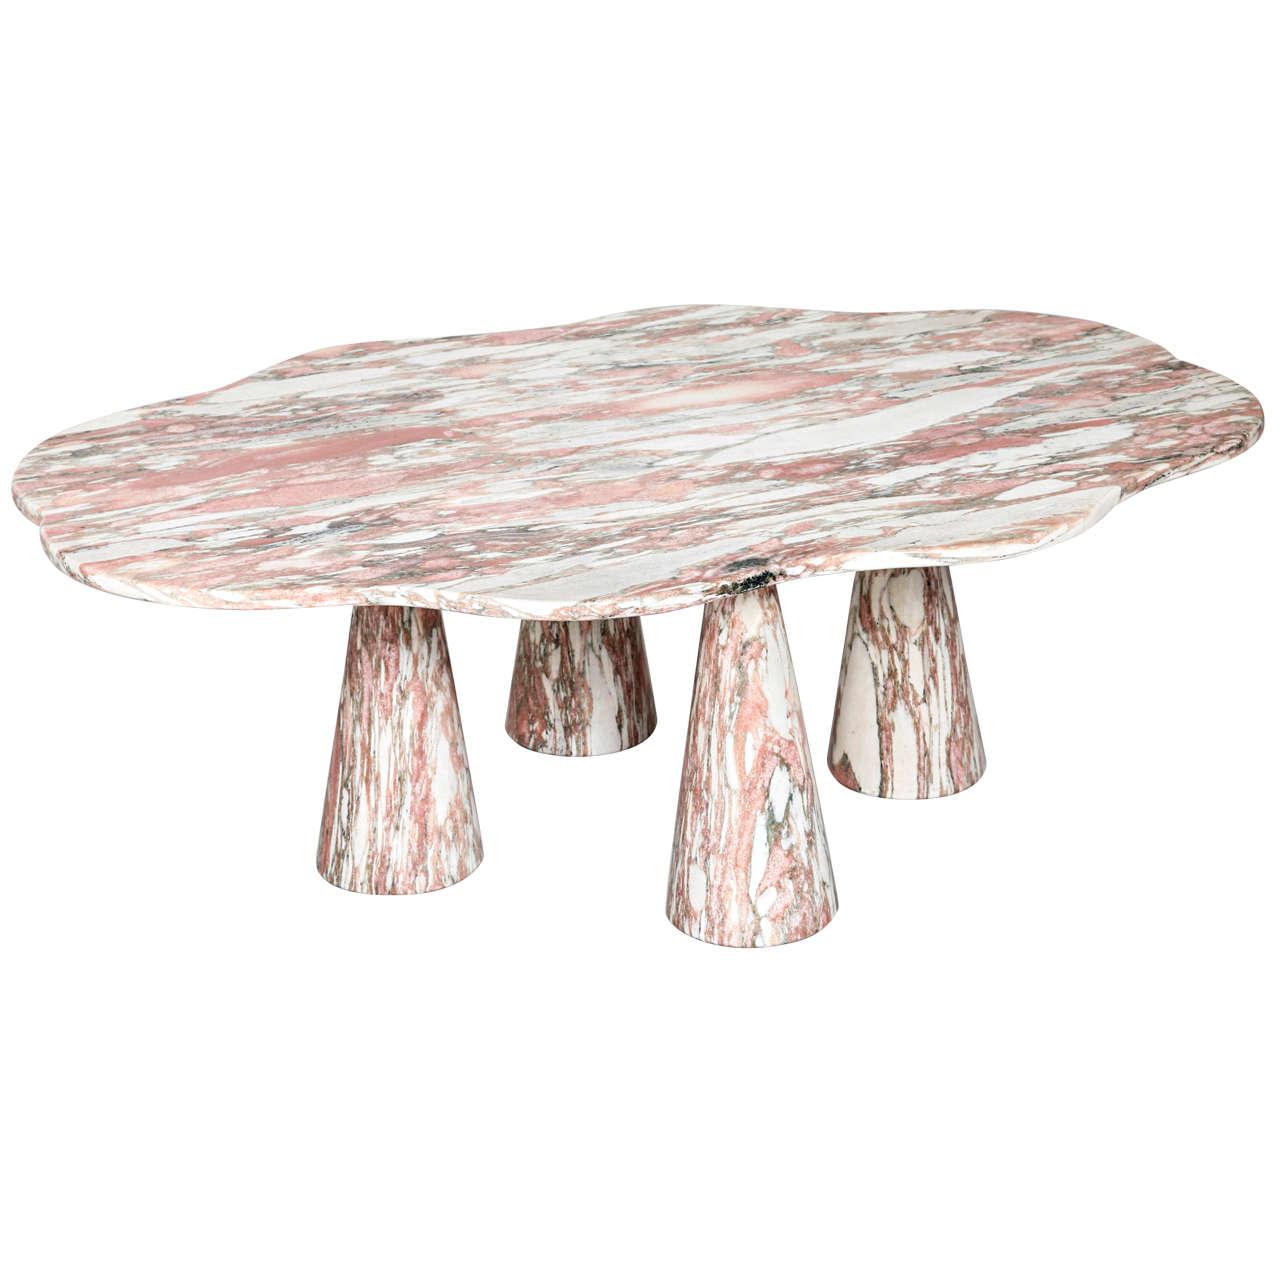 Stunning Italian Marble Coffee Table in Style of Mangiarotti 1